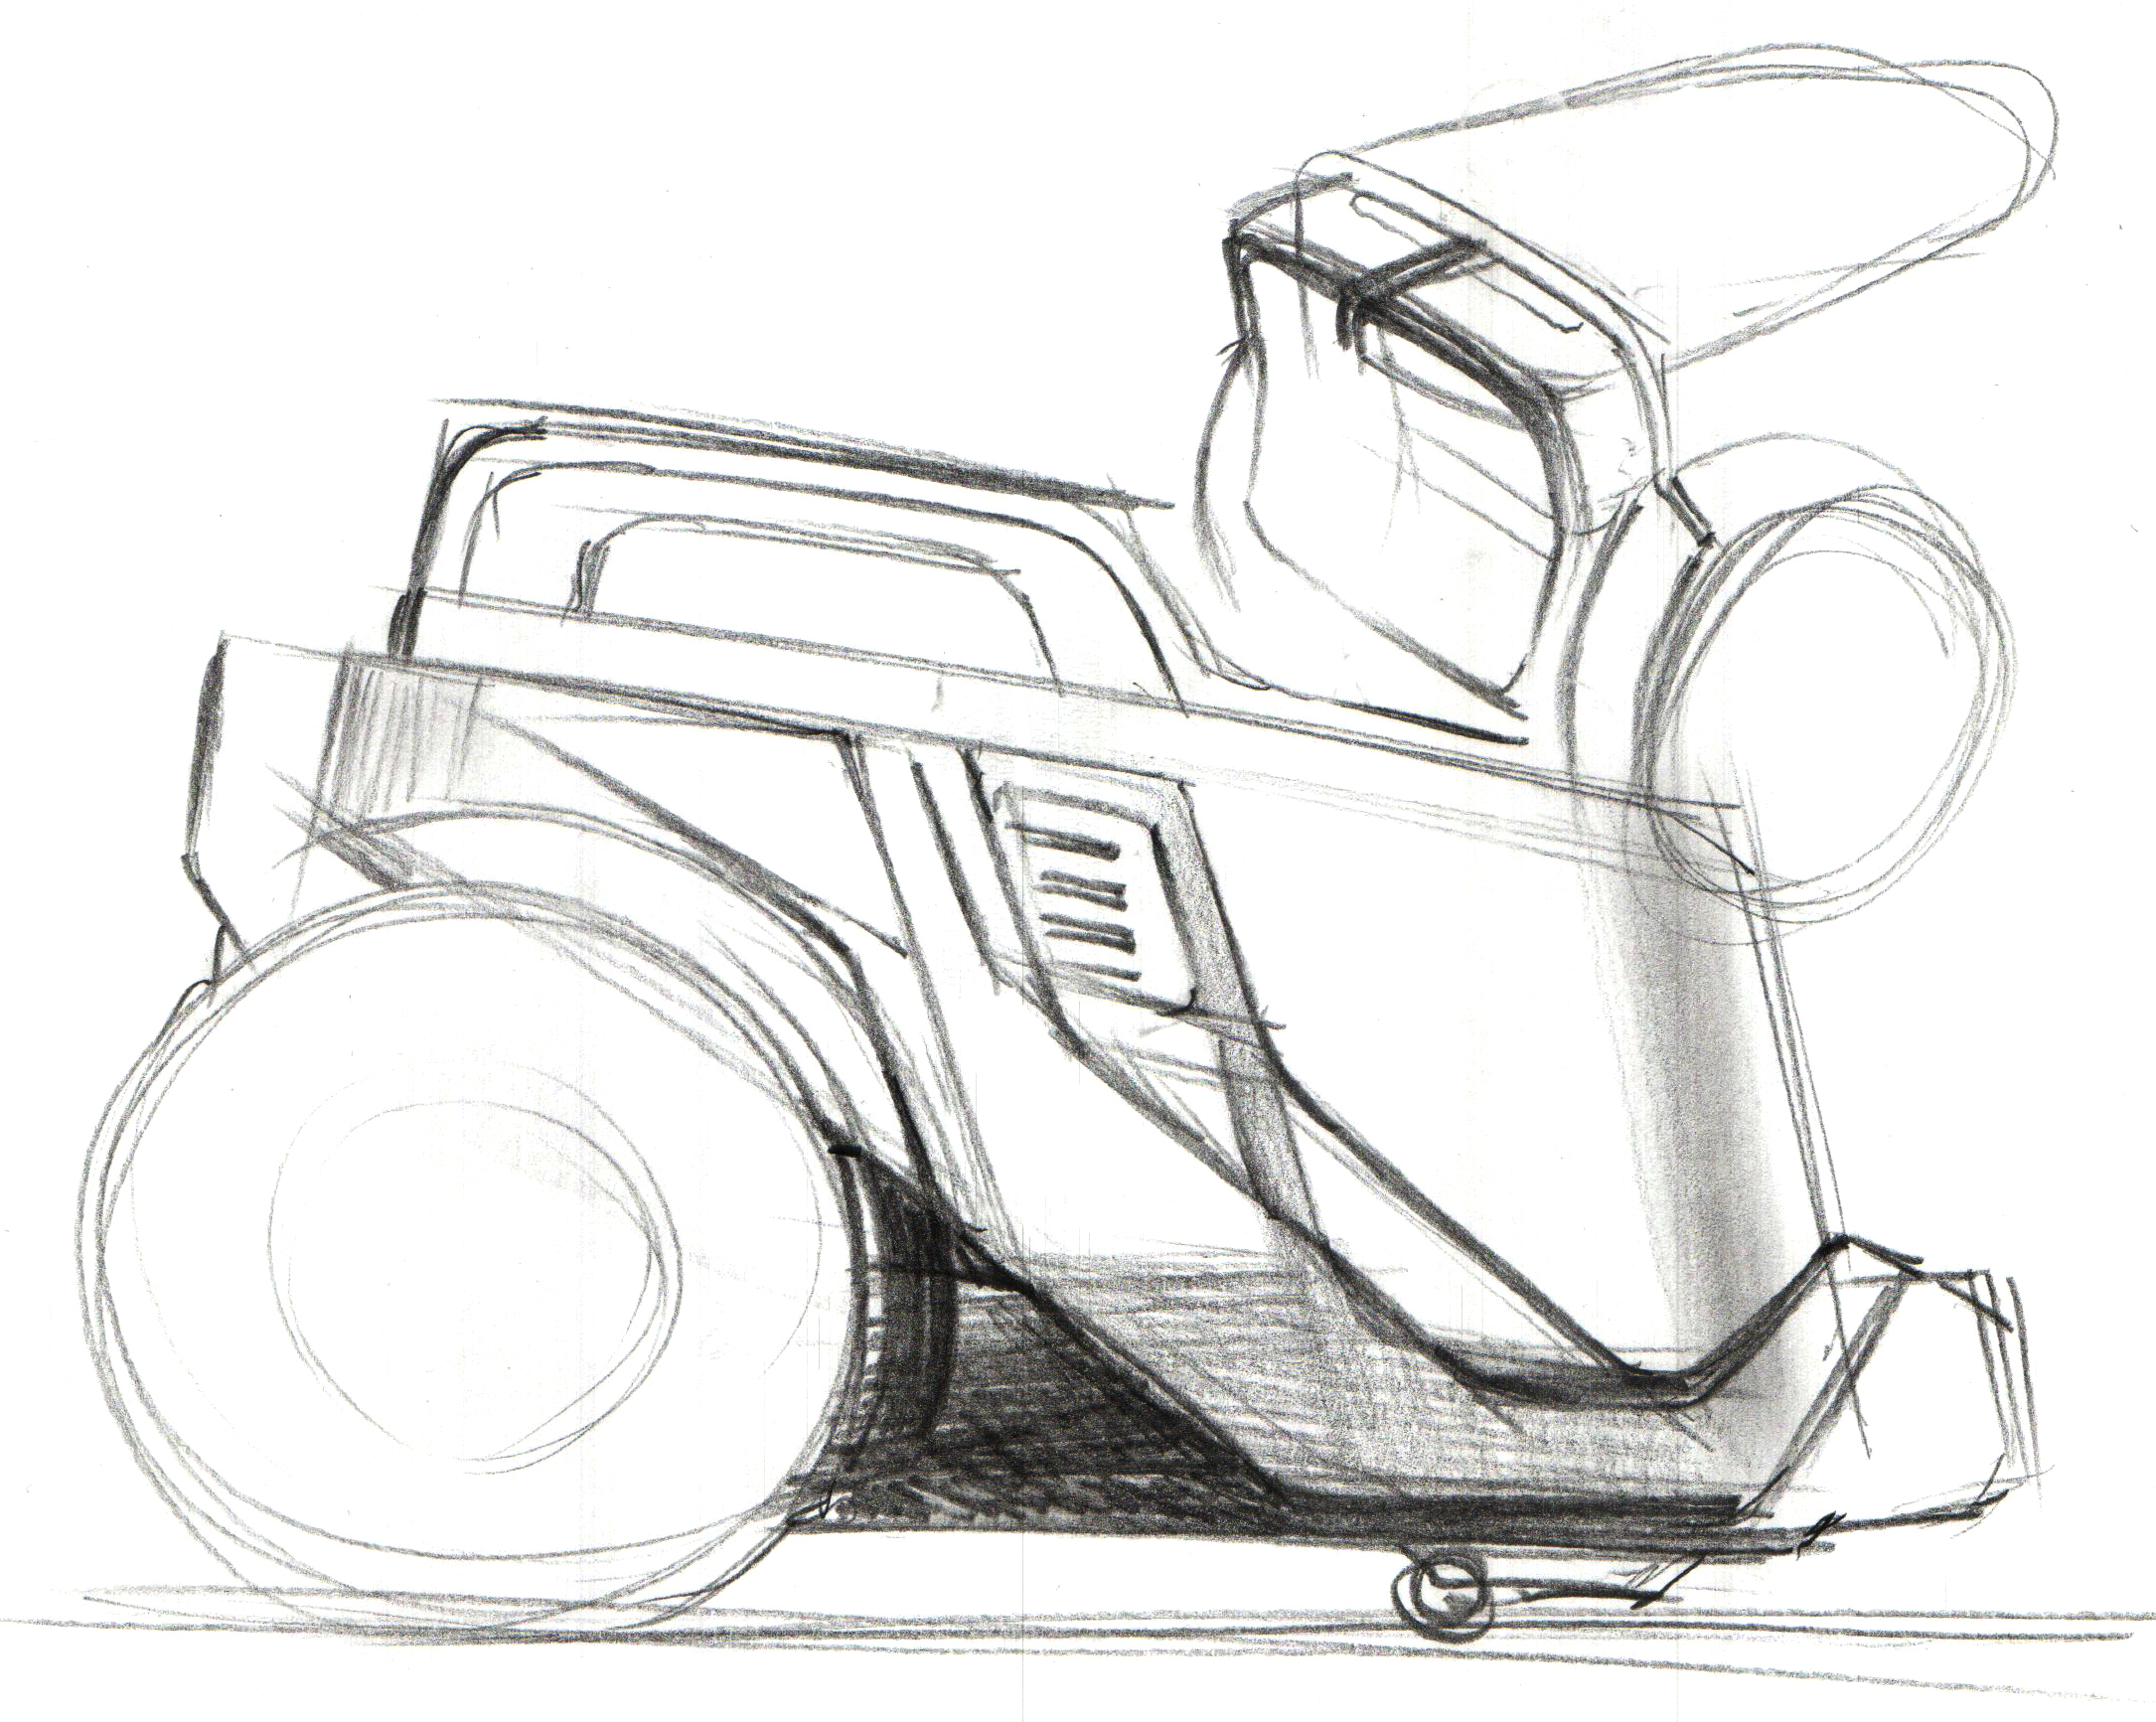 Arzum Olimpia Cyclone Vacuum Cleaner Design Sketches